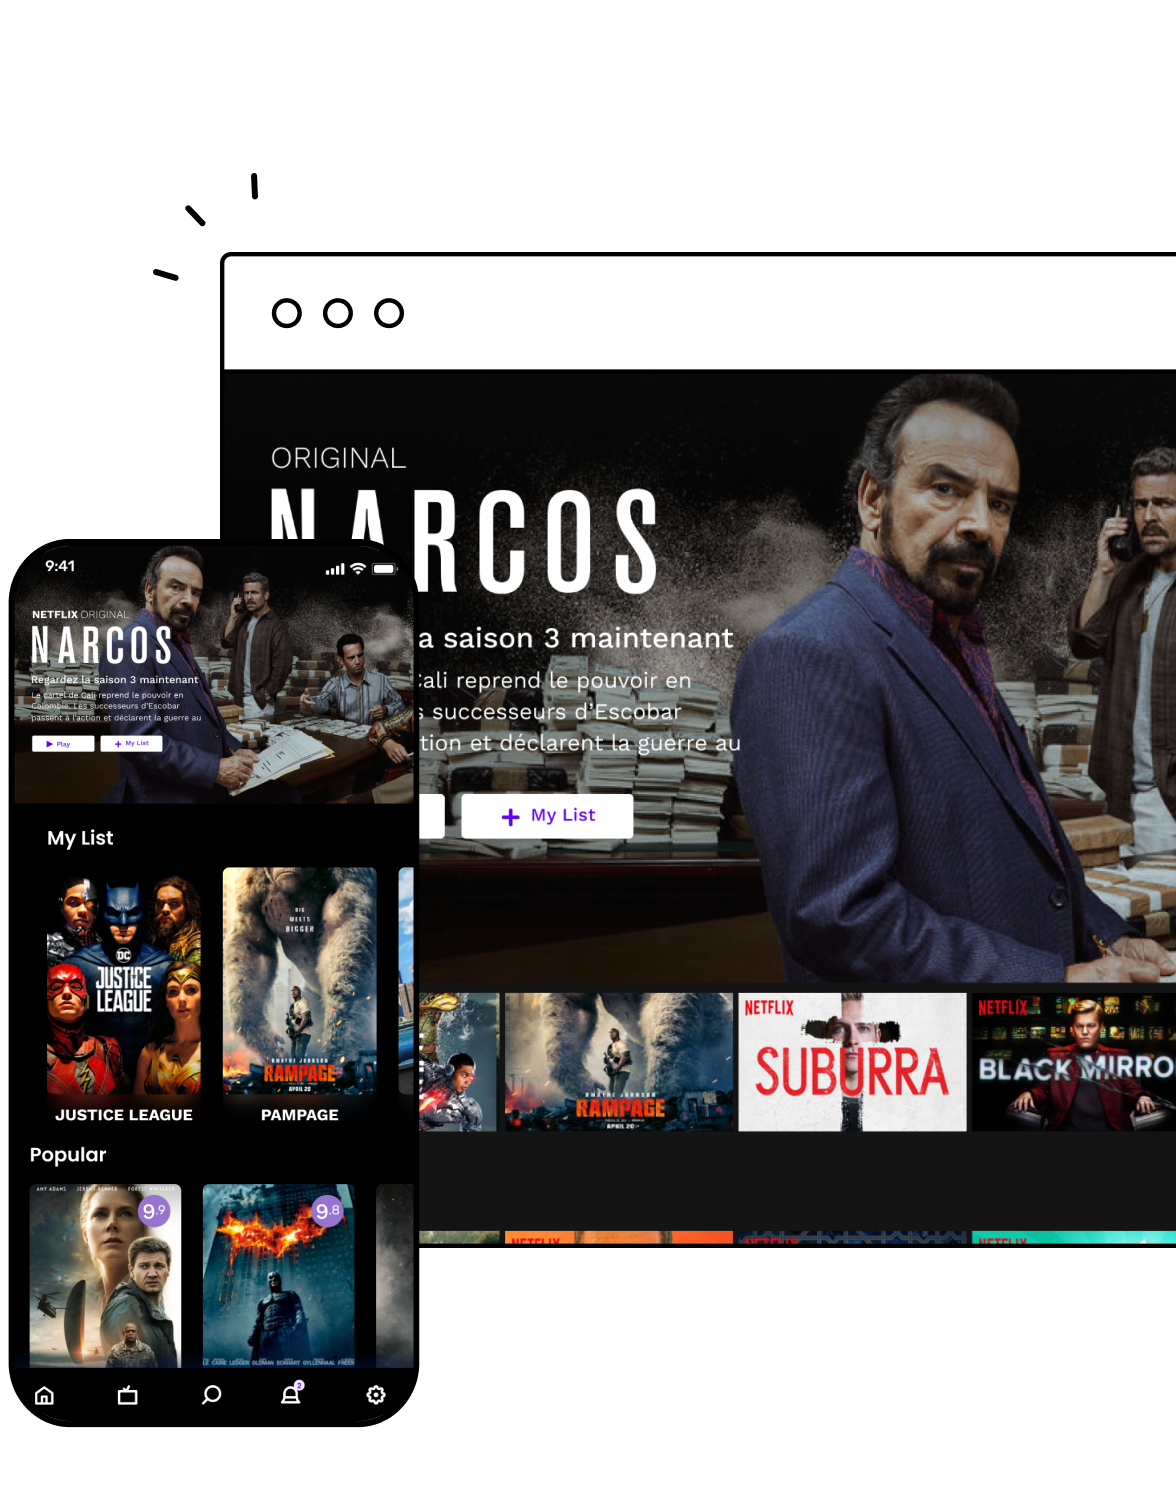 PWA screen for video streaming services